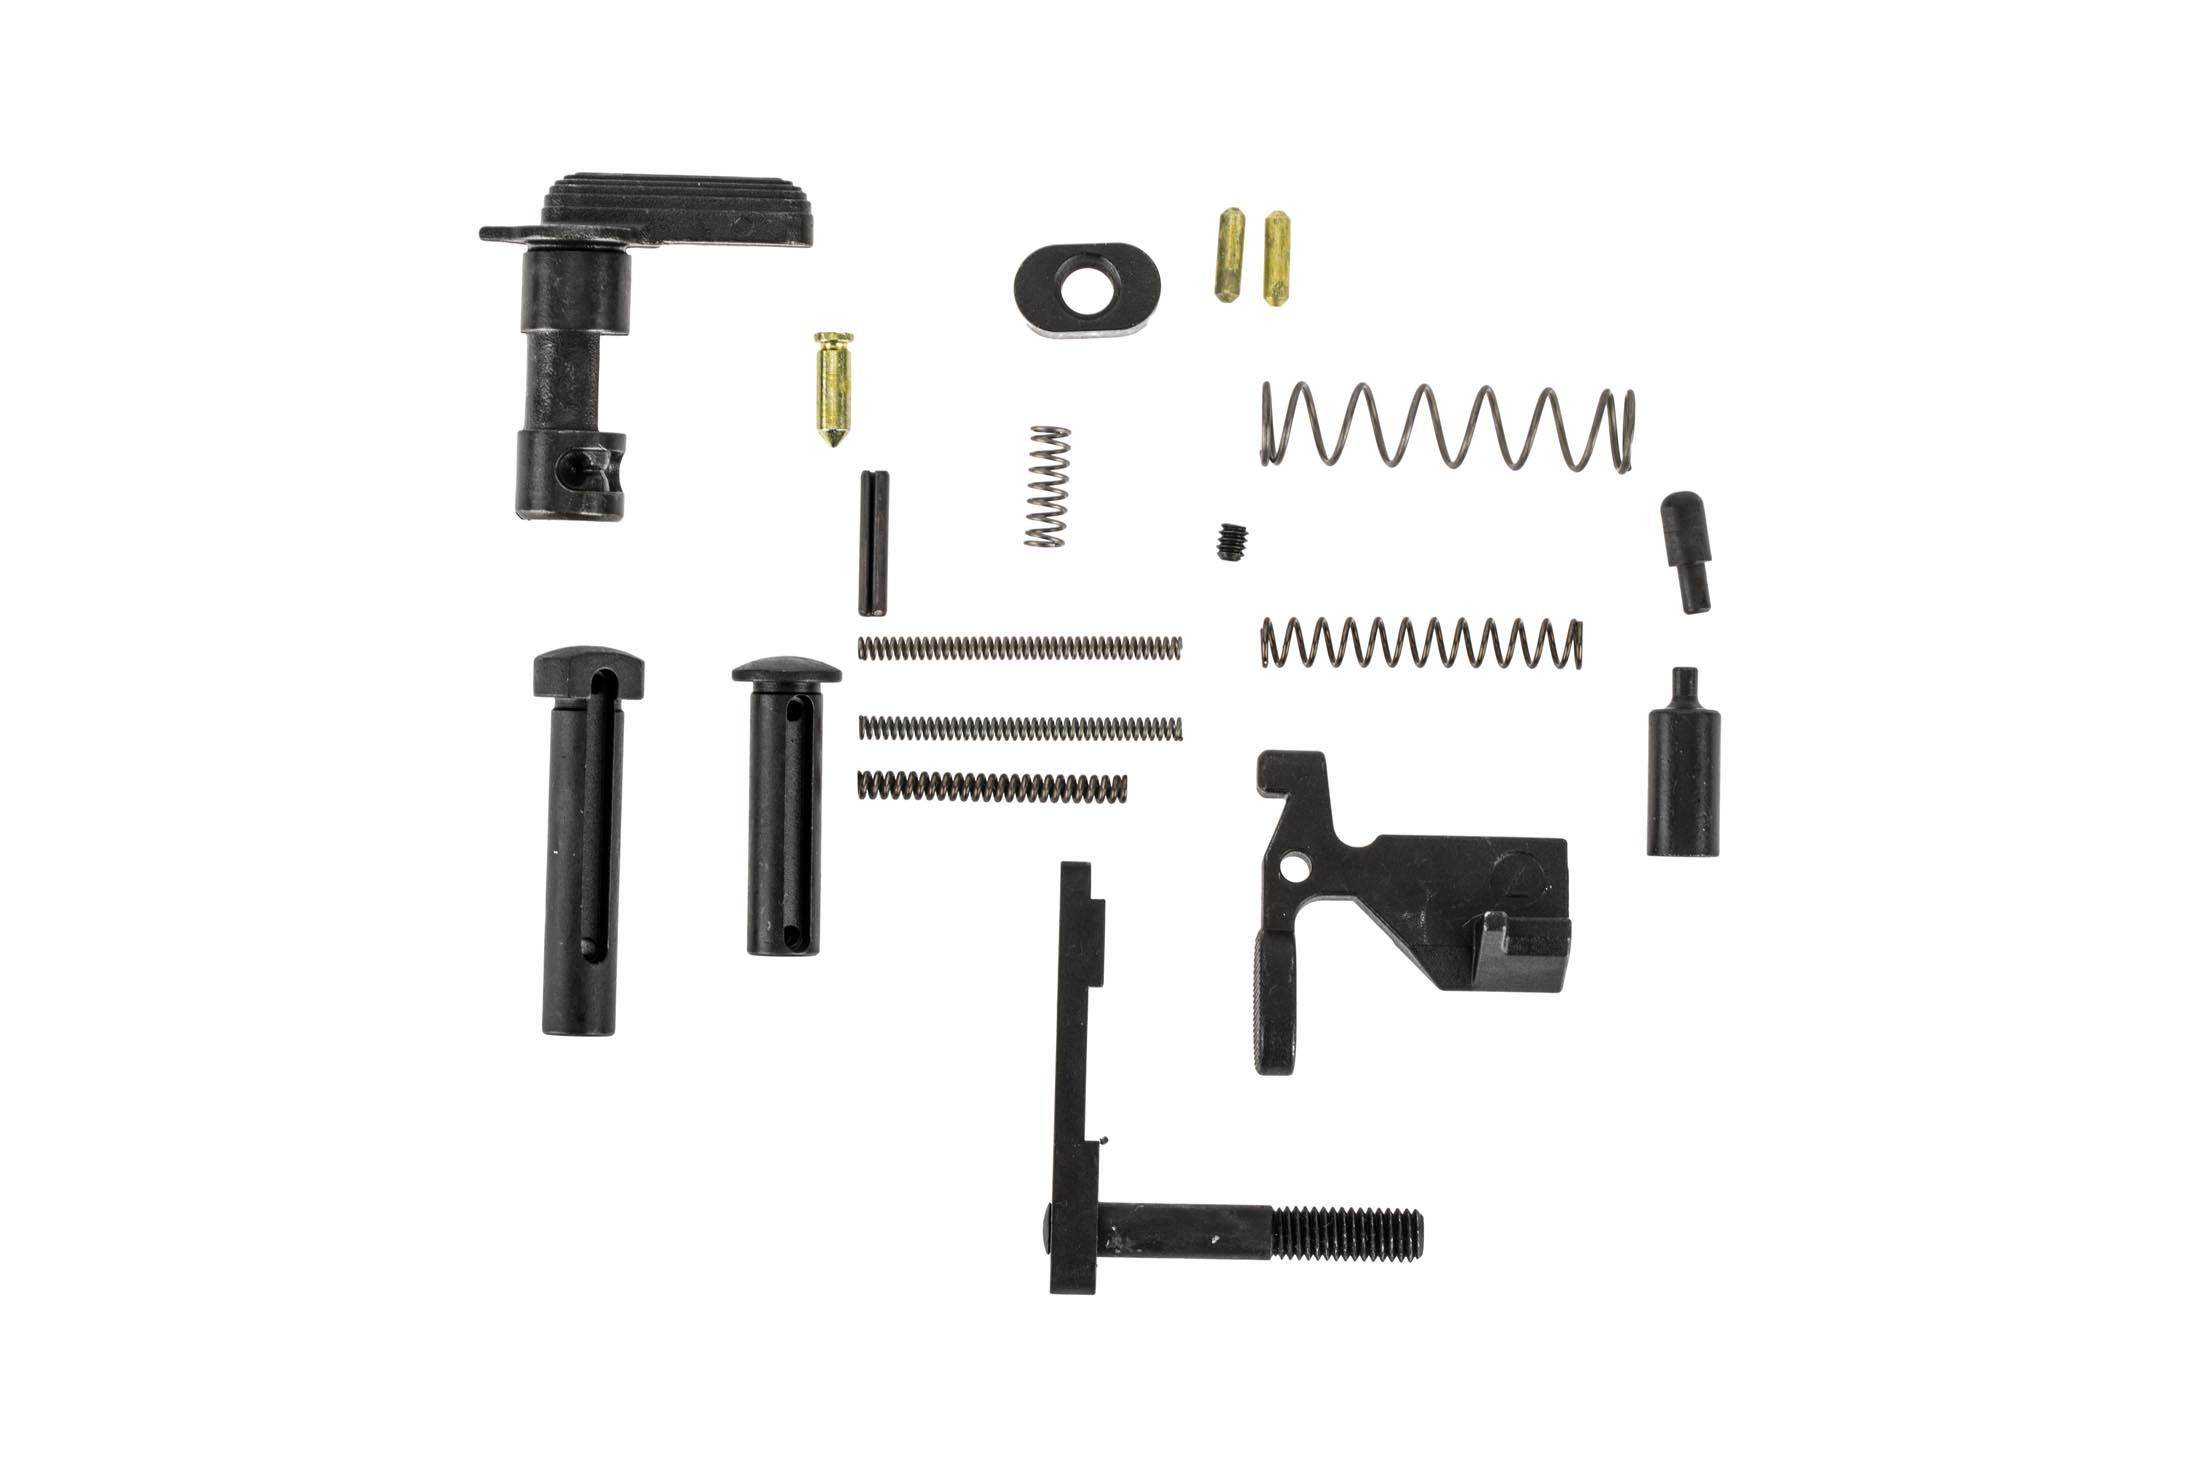 Aero Precision AR-15 lower parts kit without trigger group, pistol grip, or trigger guard